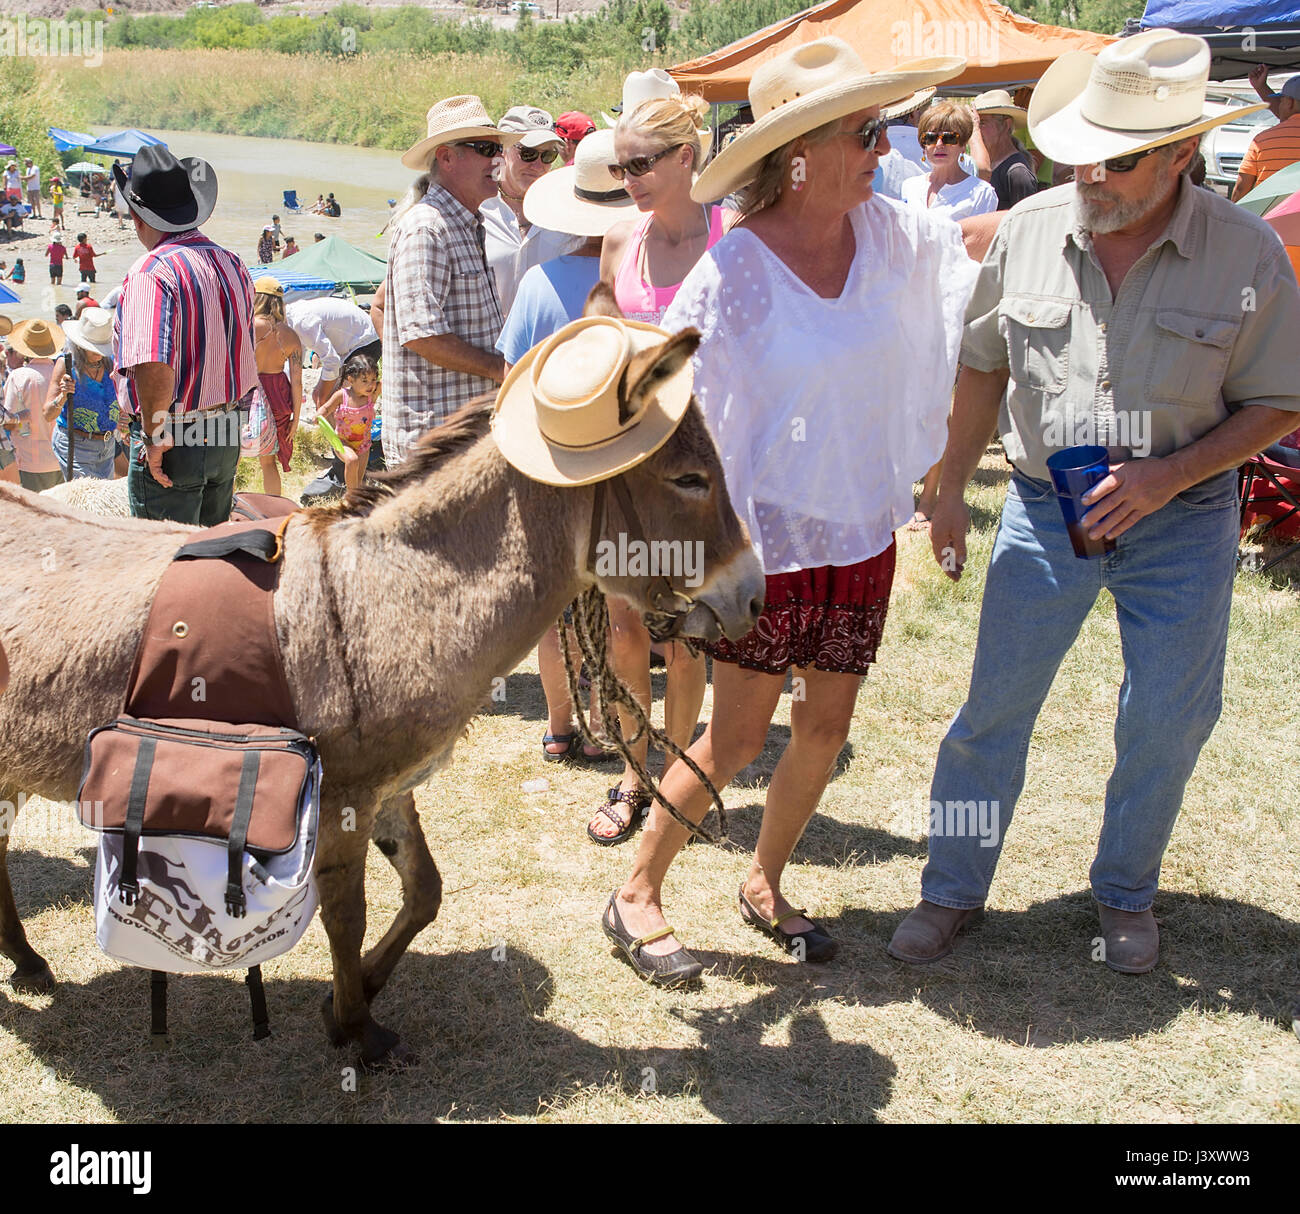 A woman, and her donkey, taking part in Fiesta Protesta, an annual event held to protest the closure of the US-Mexico - Stock Image